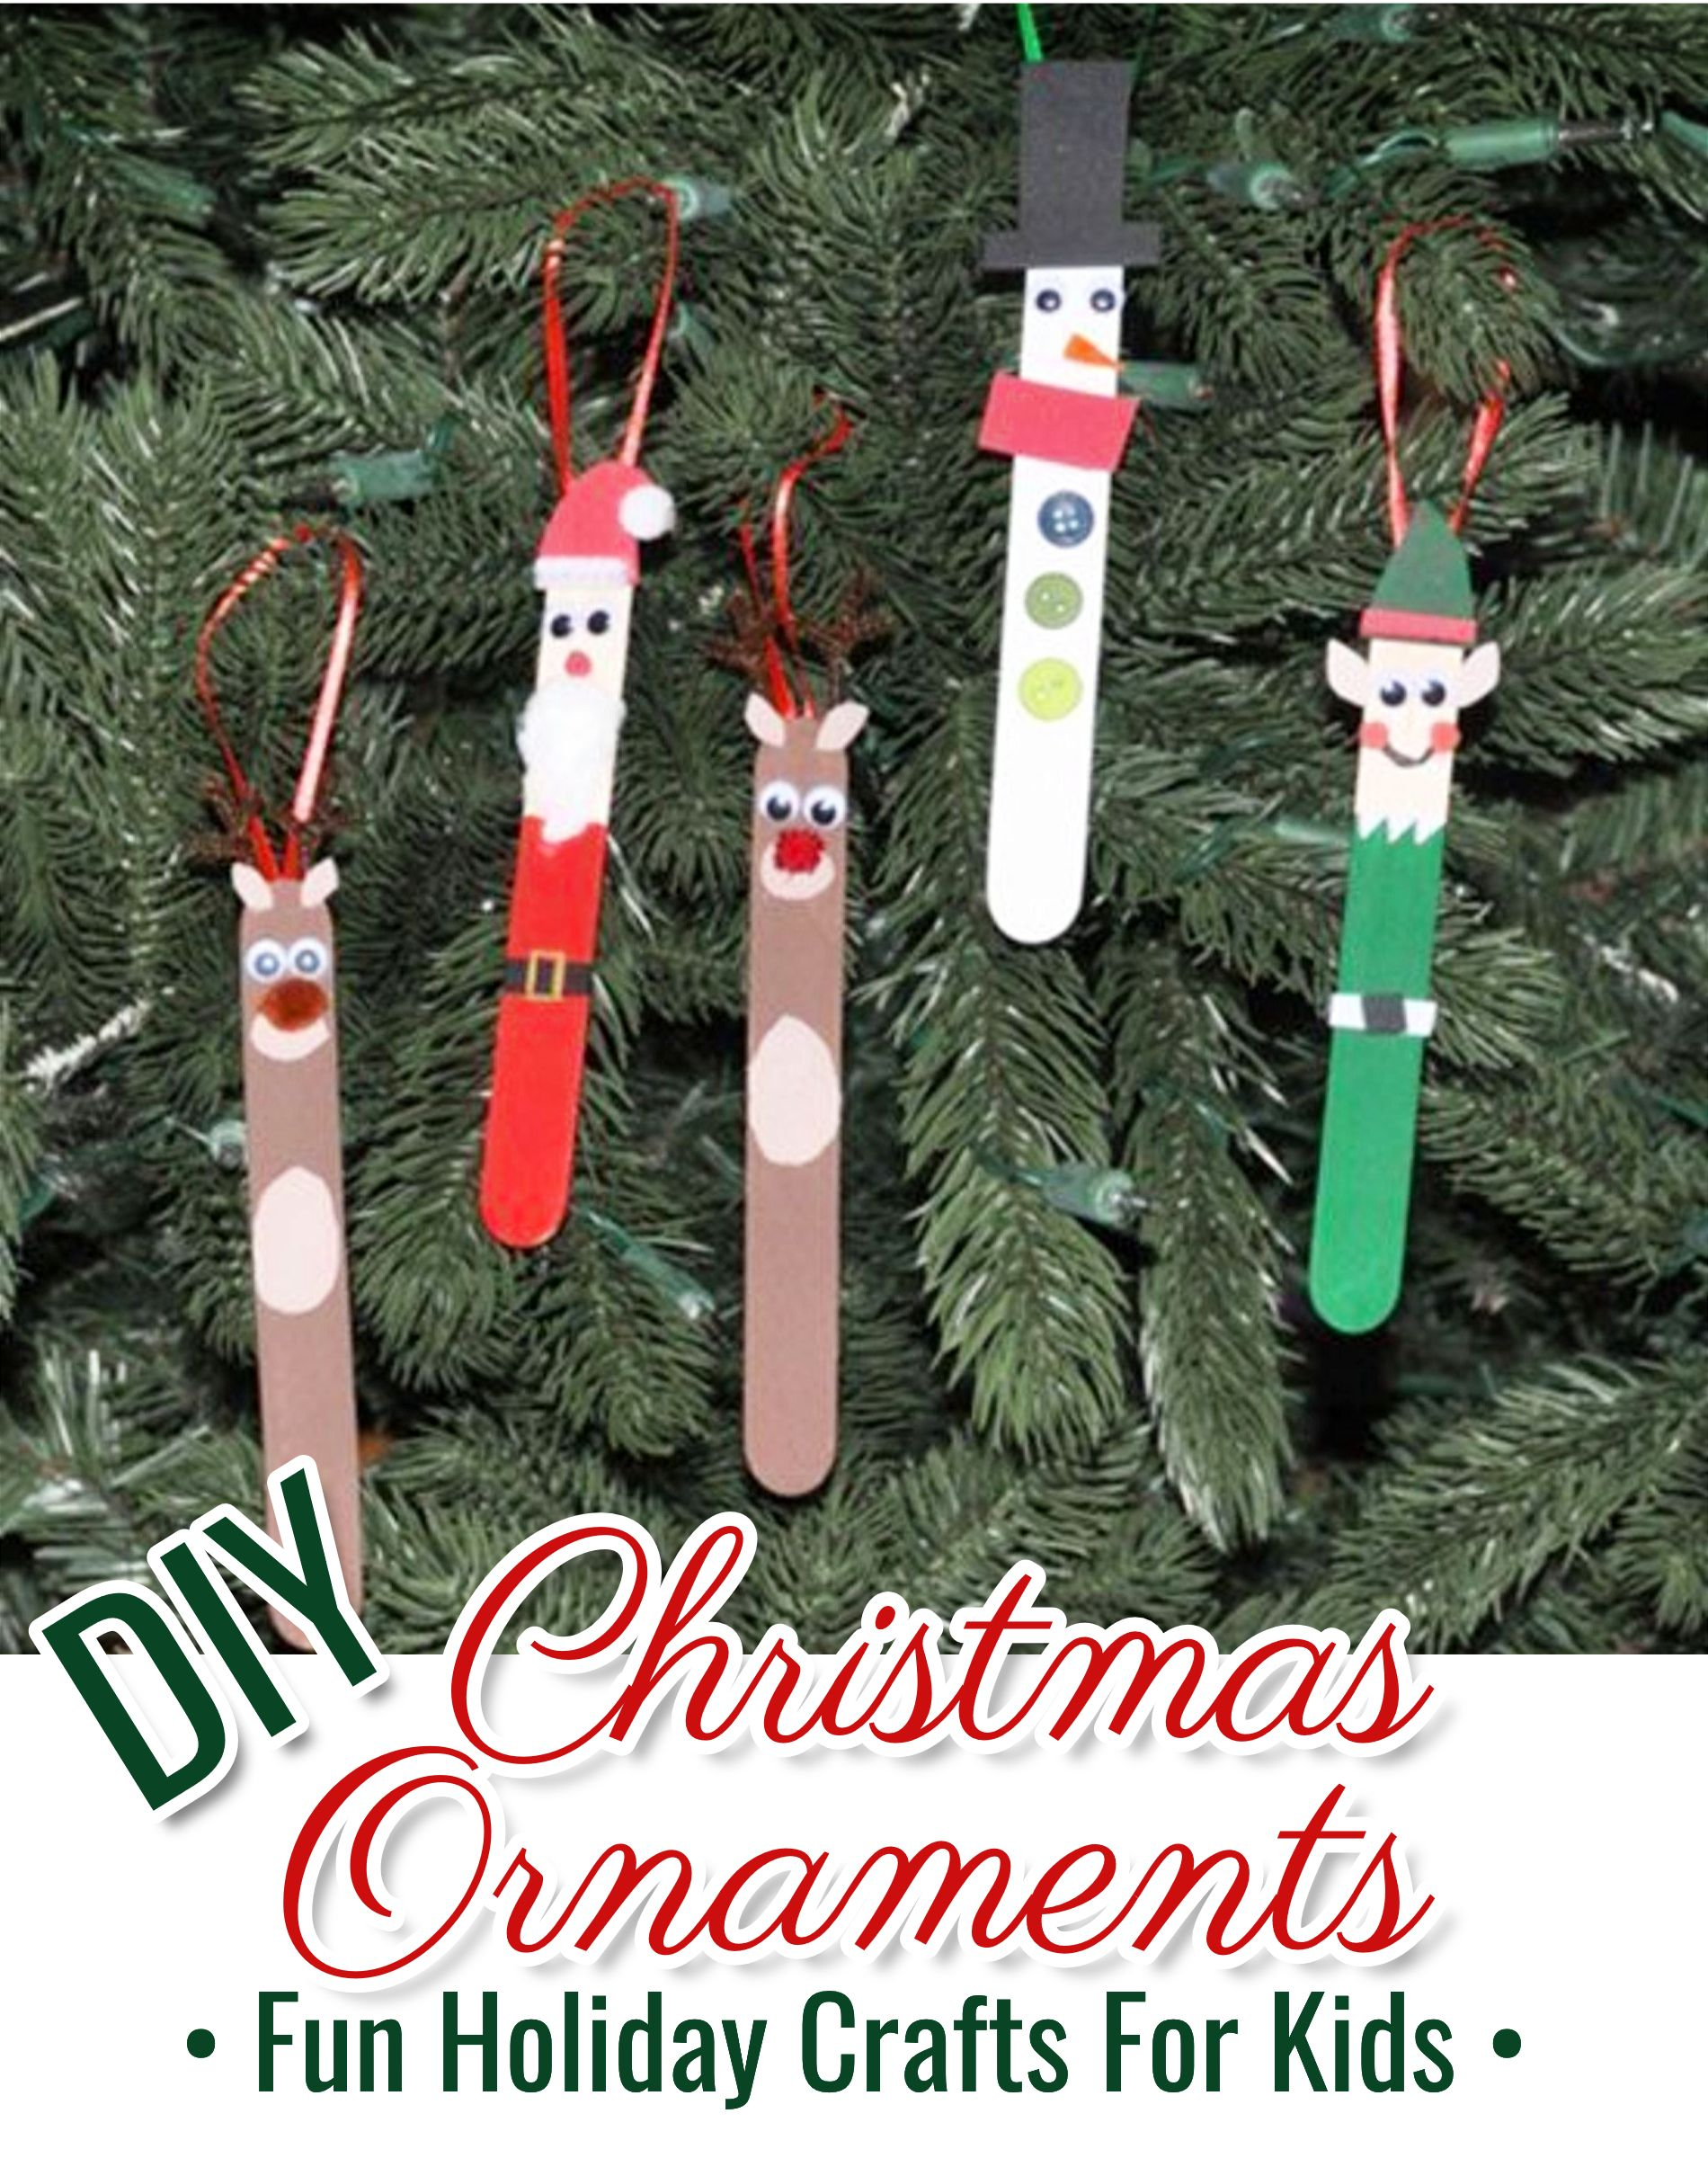 Kids 2020 Christmas Ornaments DIY Christmas Crafts for Kids   Easy Craft Projects for Christmas